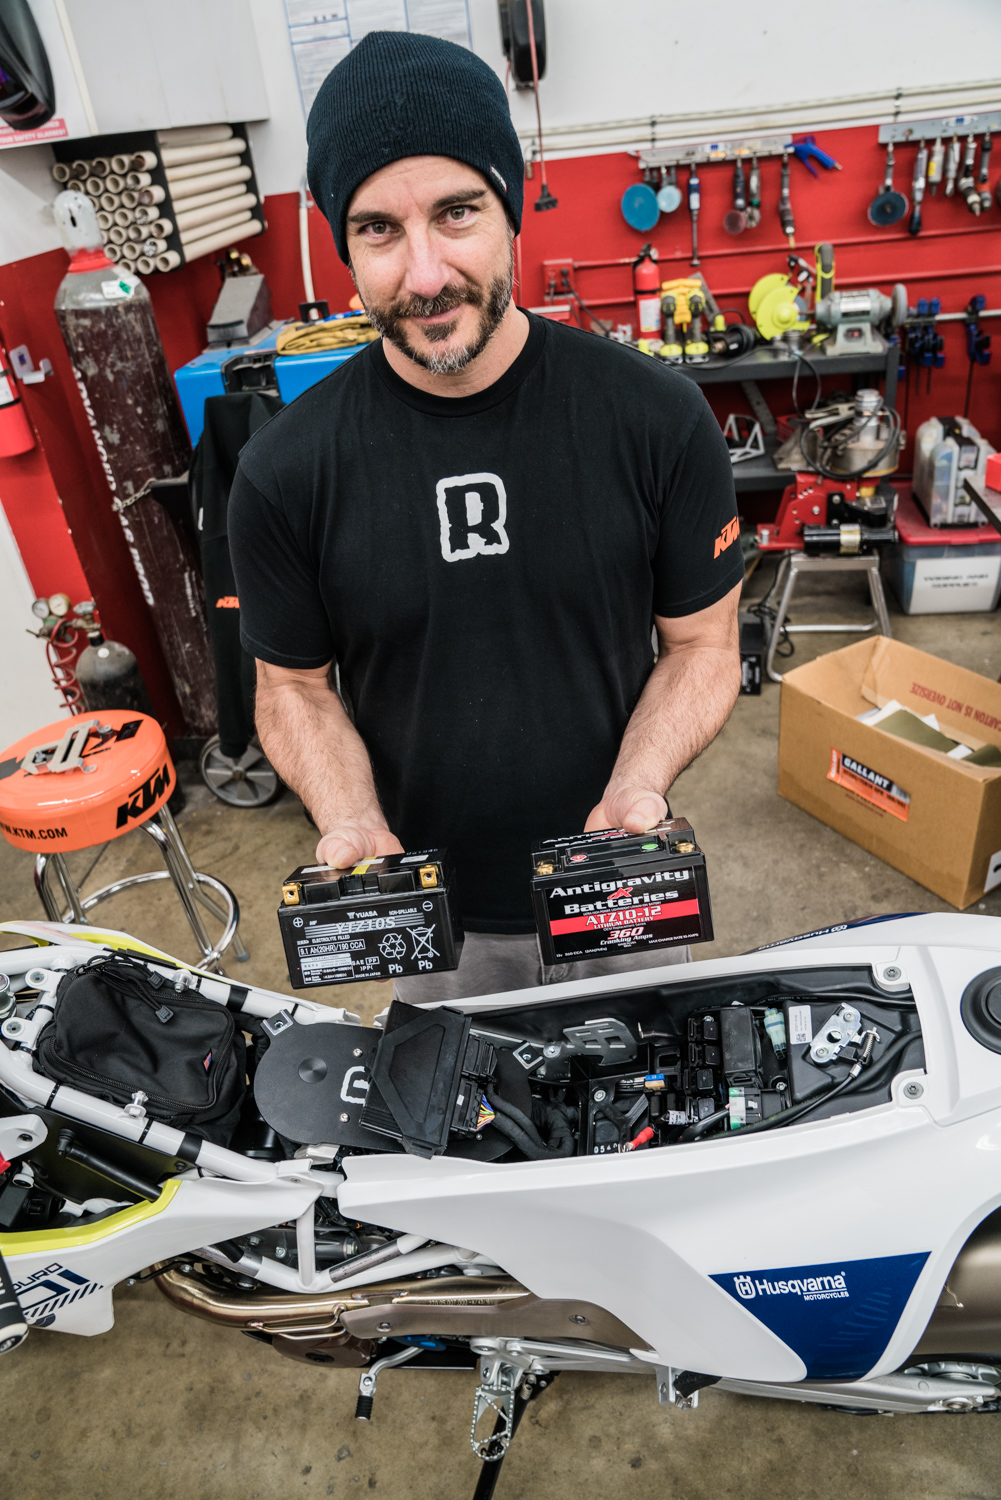 Second Time Around Ride Must Go On 701 Rally Build Rottweiler Husqvarna Wiring Harness Connectors We Have Had Great Success With Lithium Batteries And Consider Them One Of The First Swaps When Purchasing A New Bike Extra Cold Cranking Amps Is Also